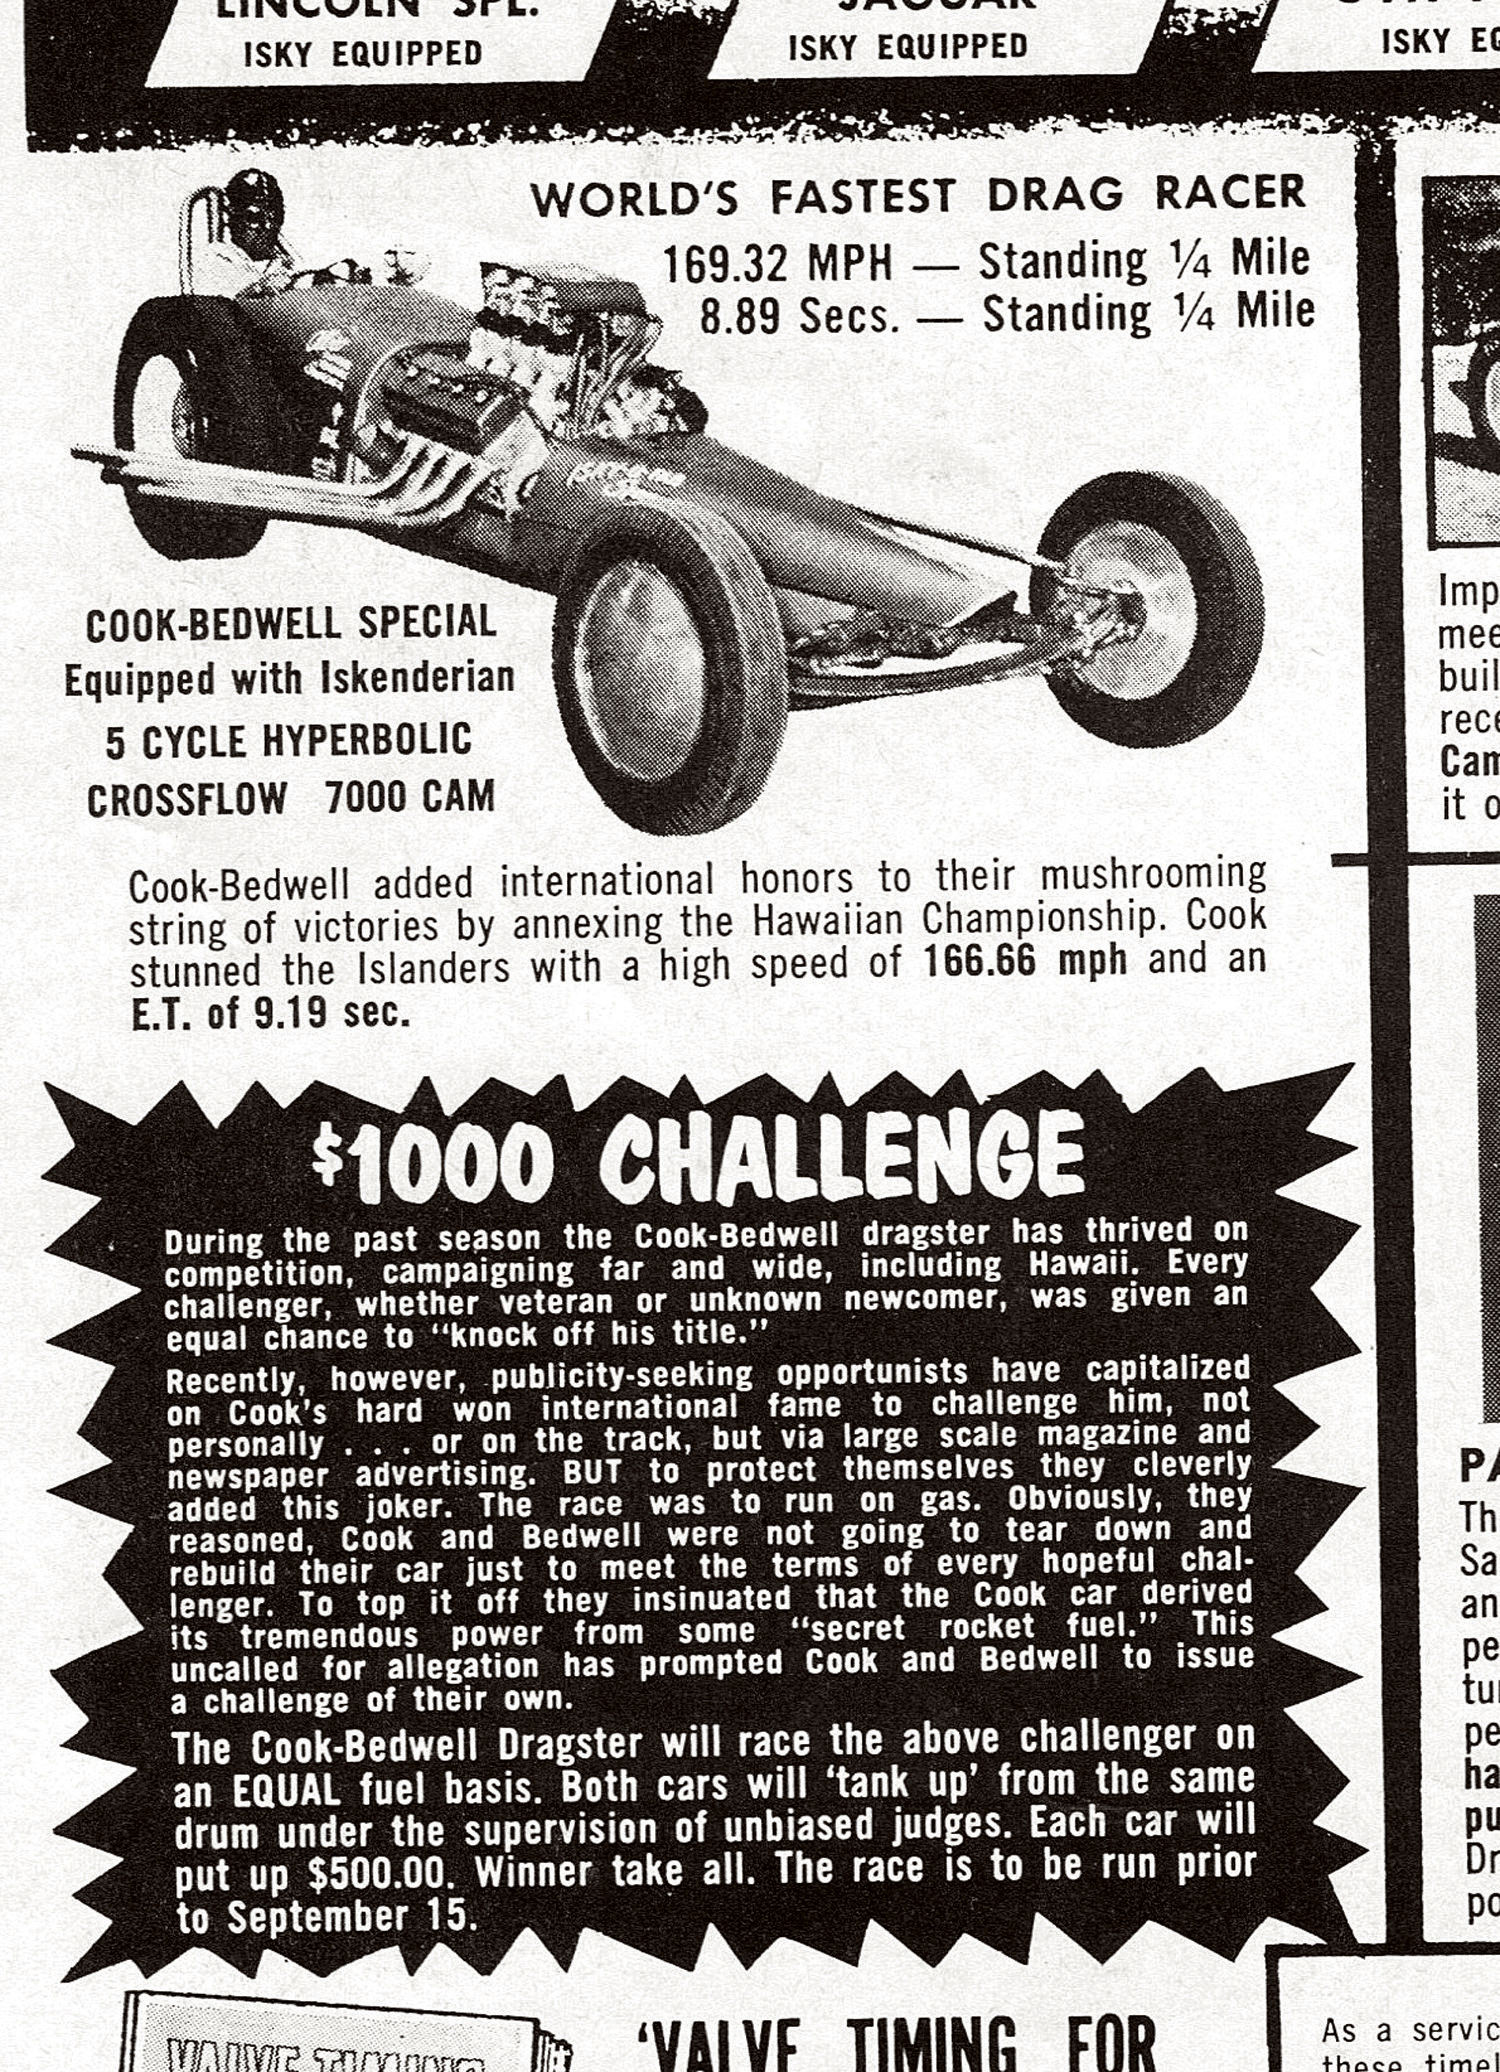 Iskenderian responded to Howard's $500 challenge with this double-dare-ya ad. It's doubtful whether either camgrinder seriously expected the Cook & Bedwell team to interrupt a lucrative touring schedule and switch over to gas, but that possibility brought positive publicity to both savvy manufacturers. Oct. '57 Hot Rod